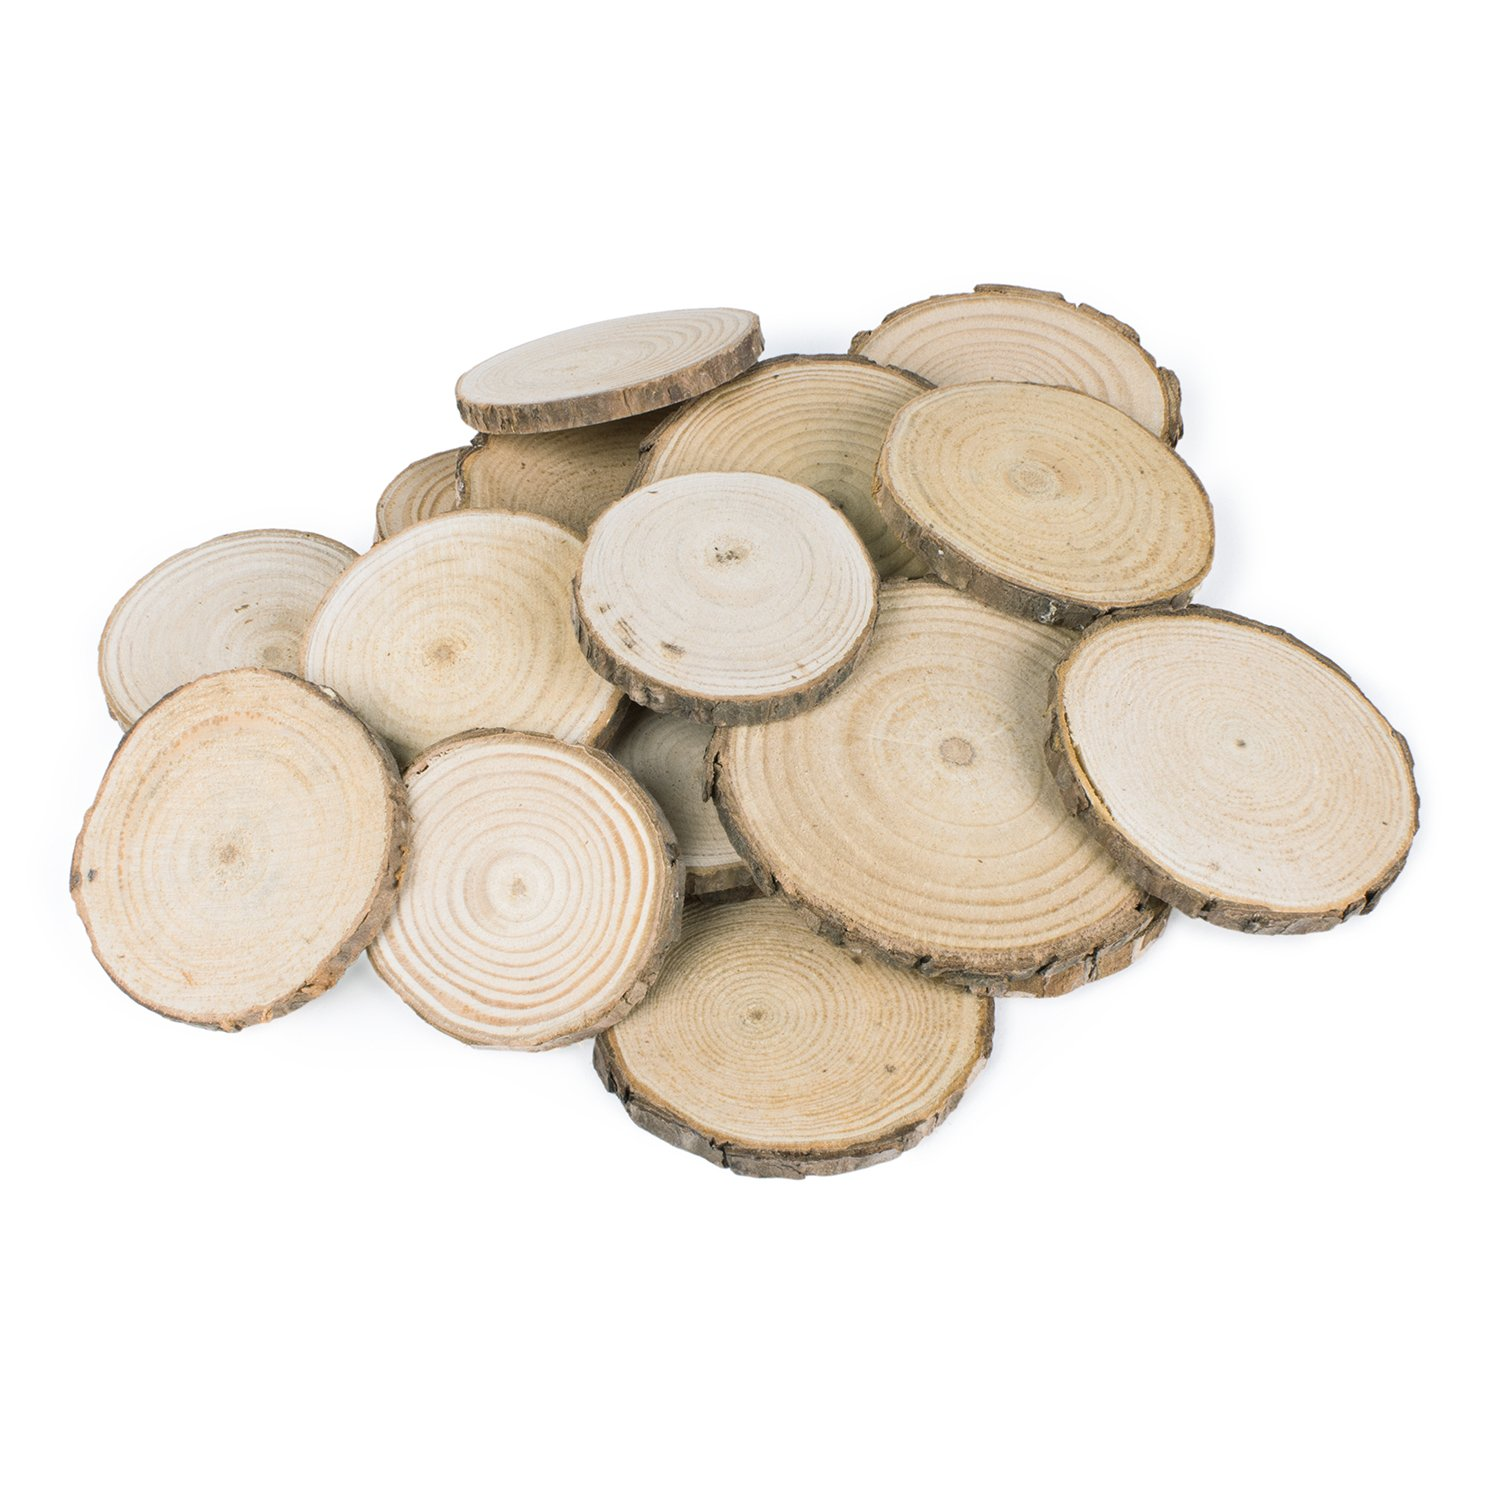 Mini Assorted Size Natural Color Tree Bark Wood Slices Round Log Discs for Arts & Crafts, Home Hanging Decorations, Event Ornaments (5-8cm, 20pcs) Super Z Outlet SZ268